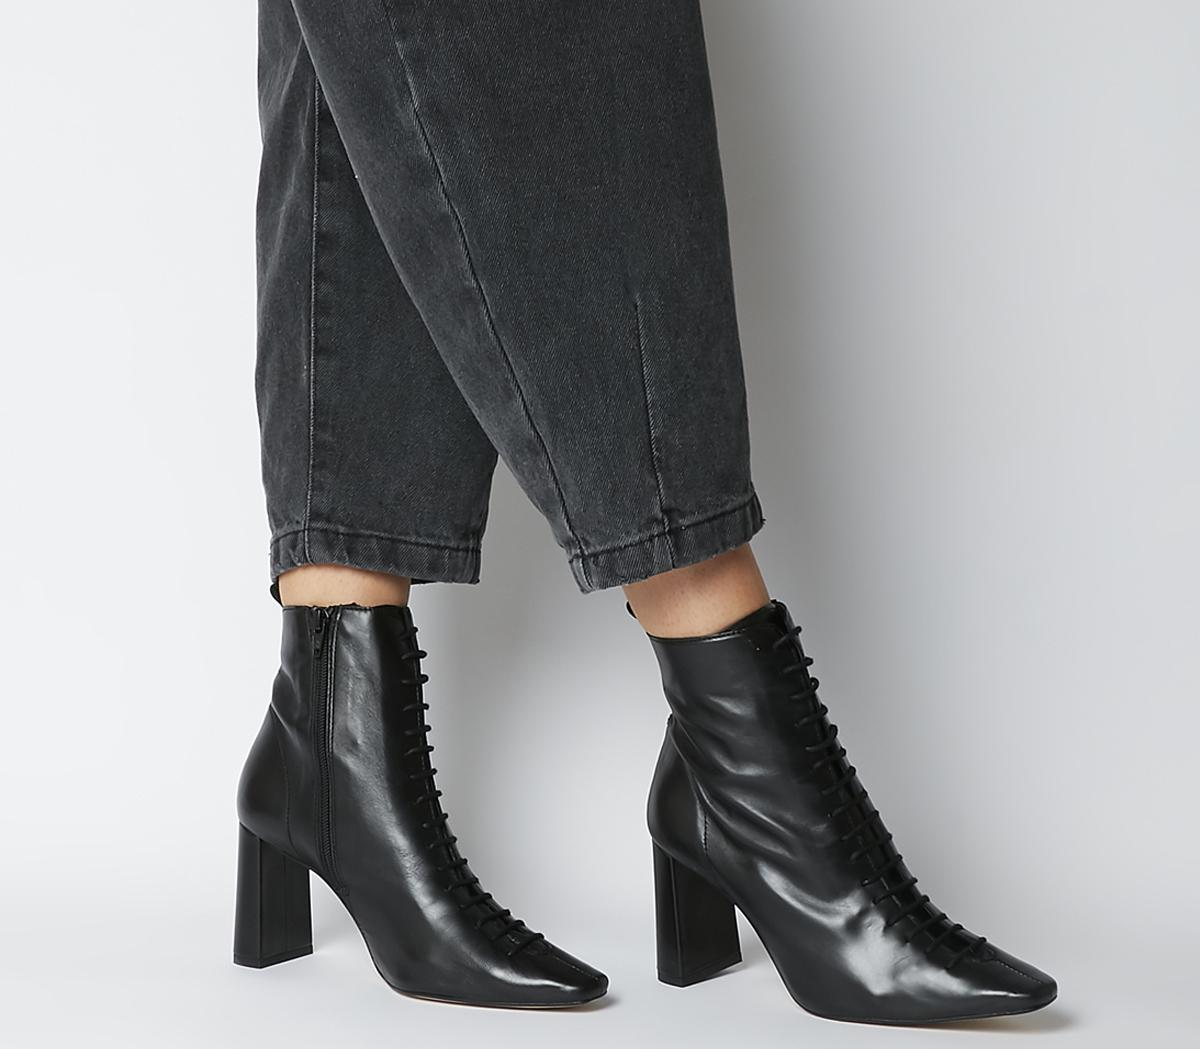 Affection Block Heel Lace Up Boots